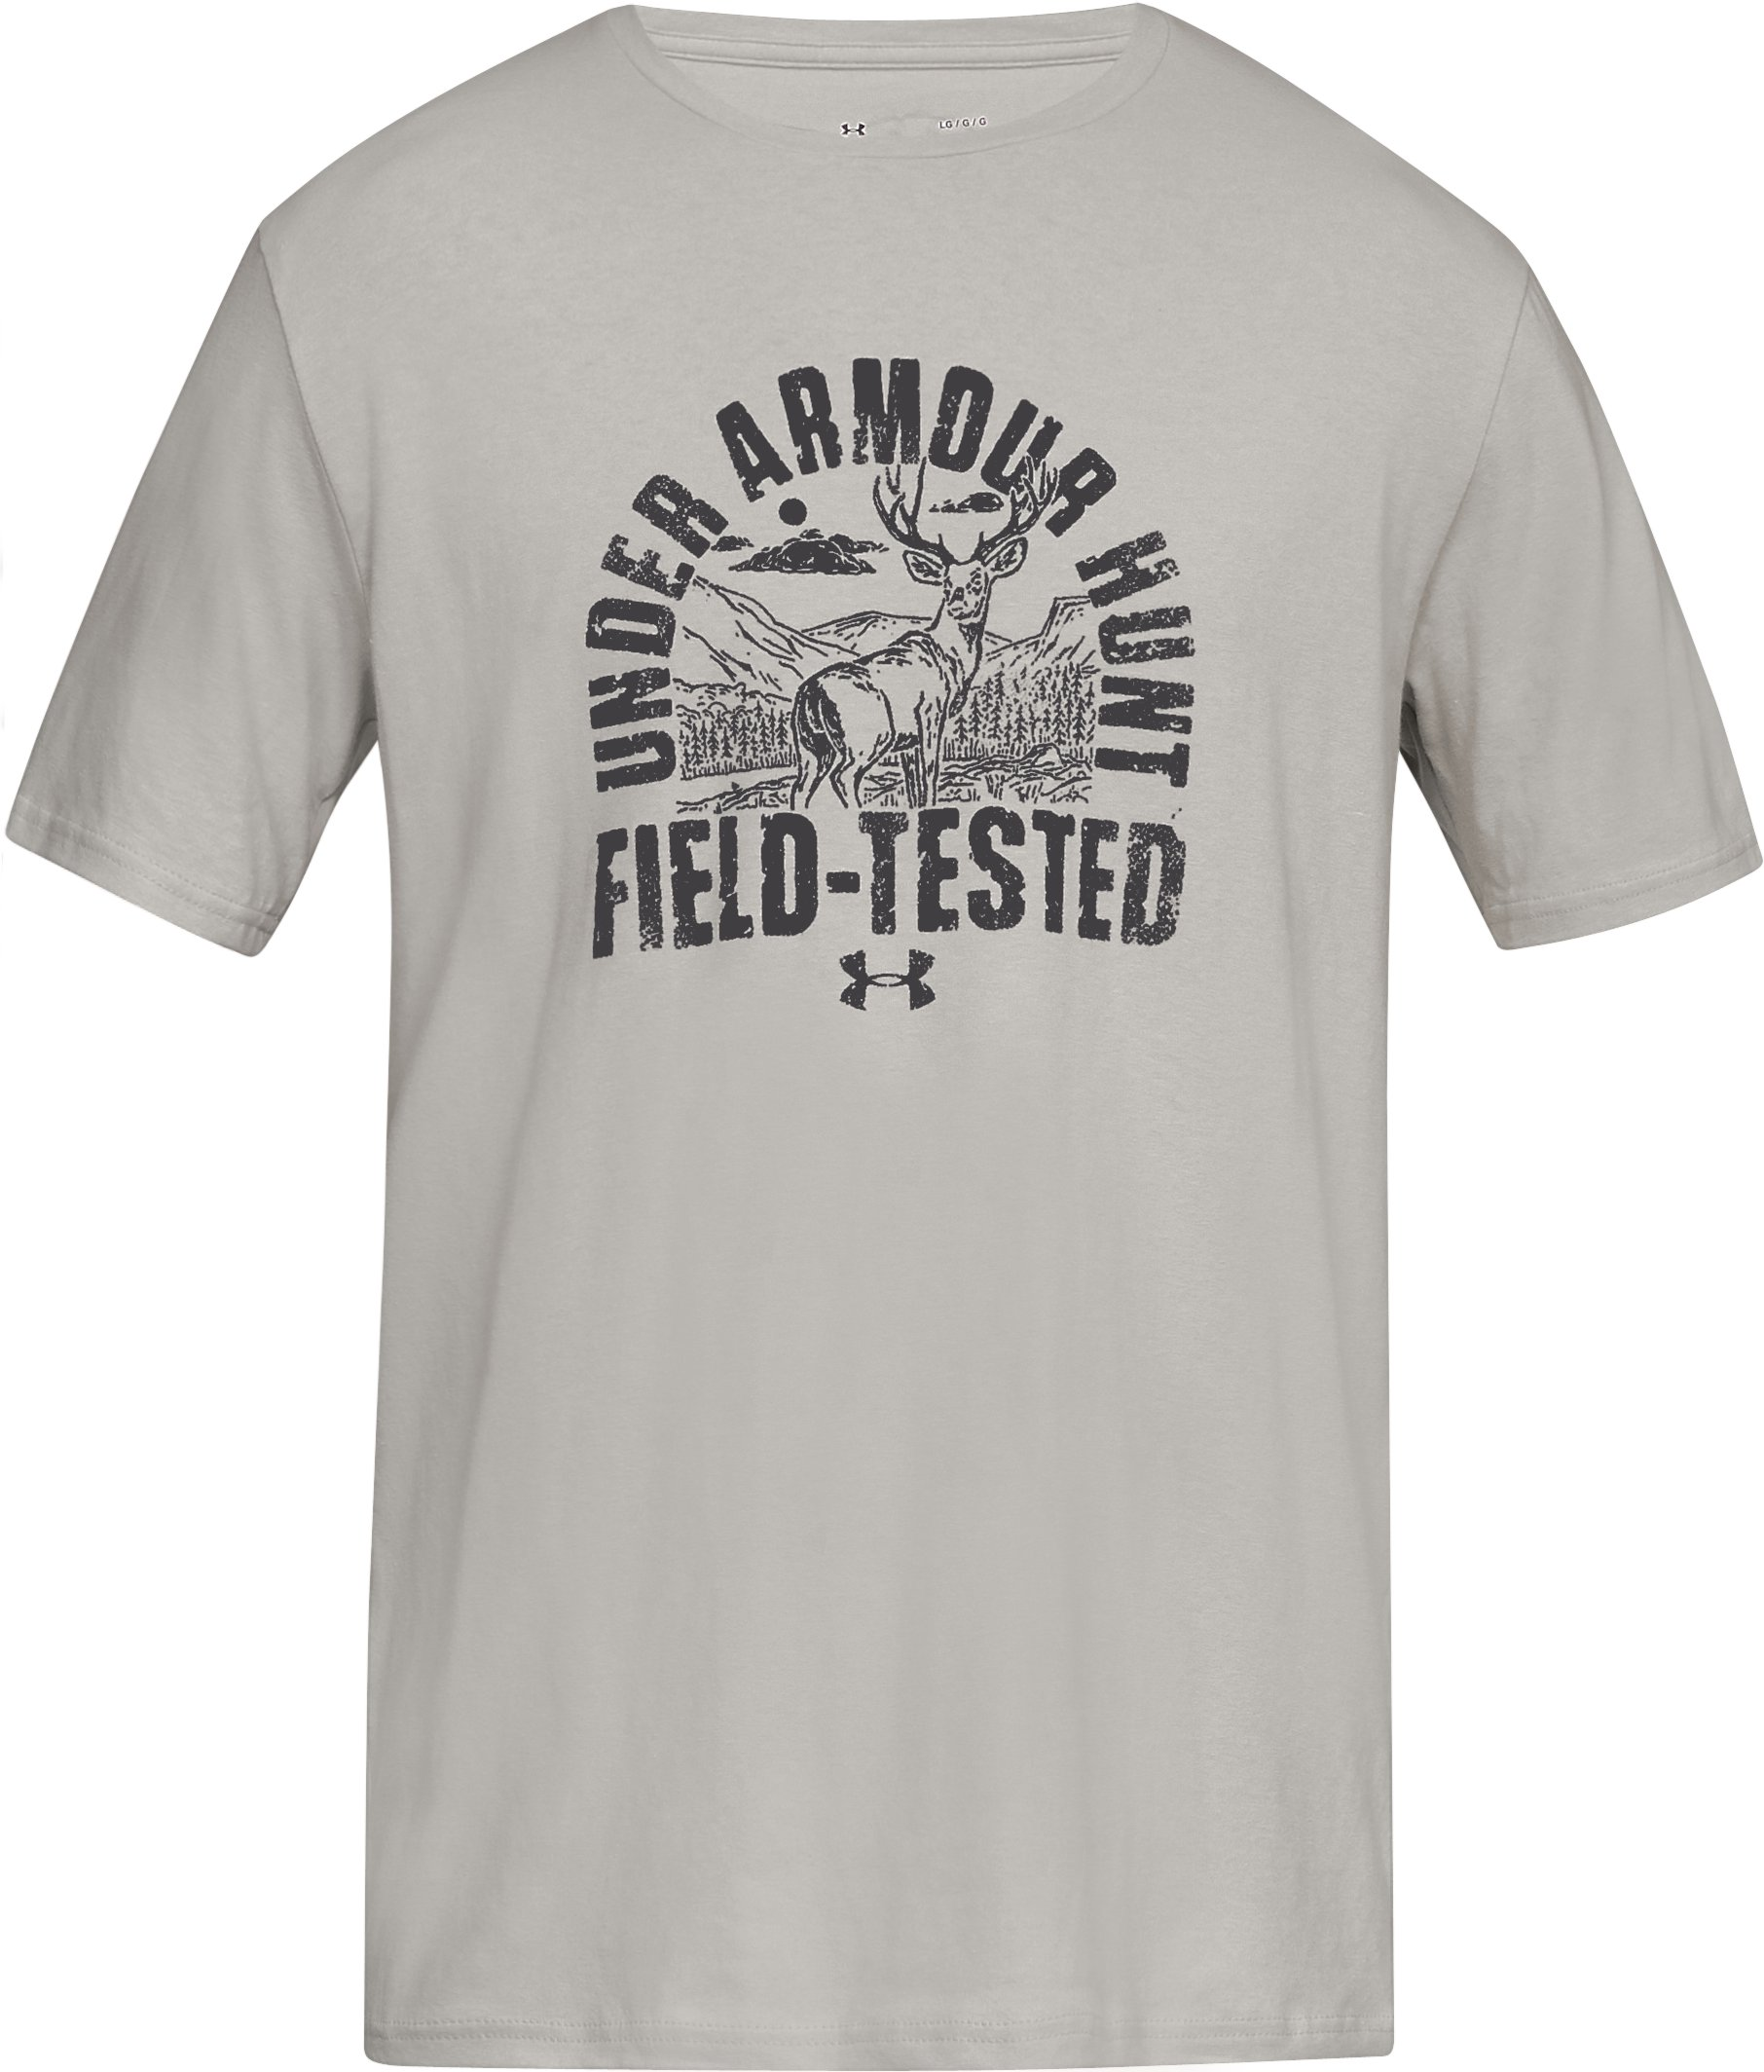 Men's UA Field Tested: Mule Deer, Ghost Gray,